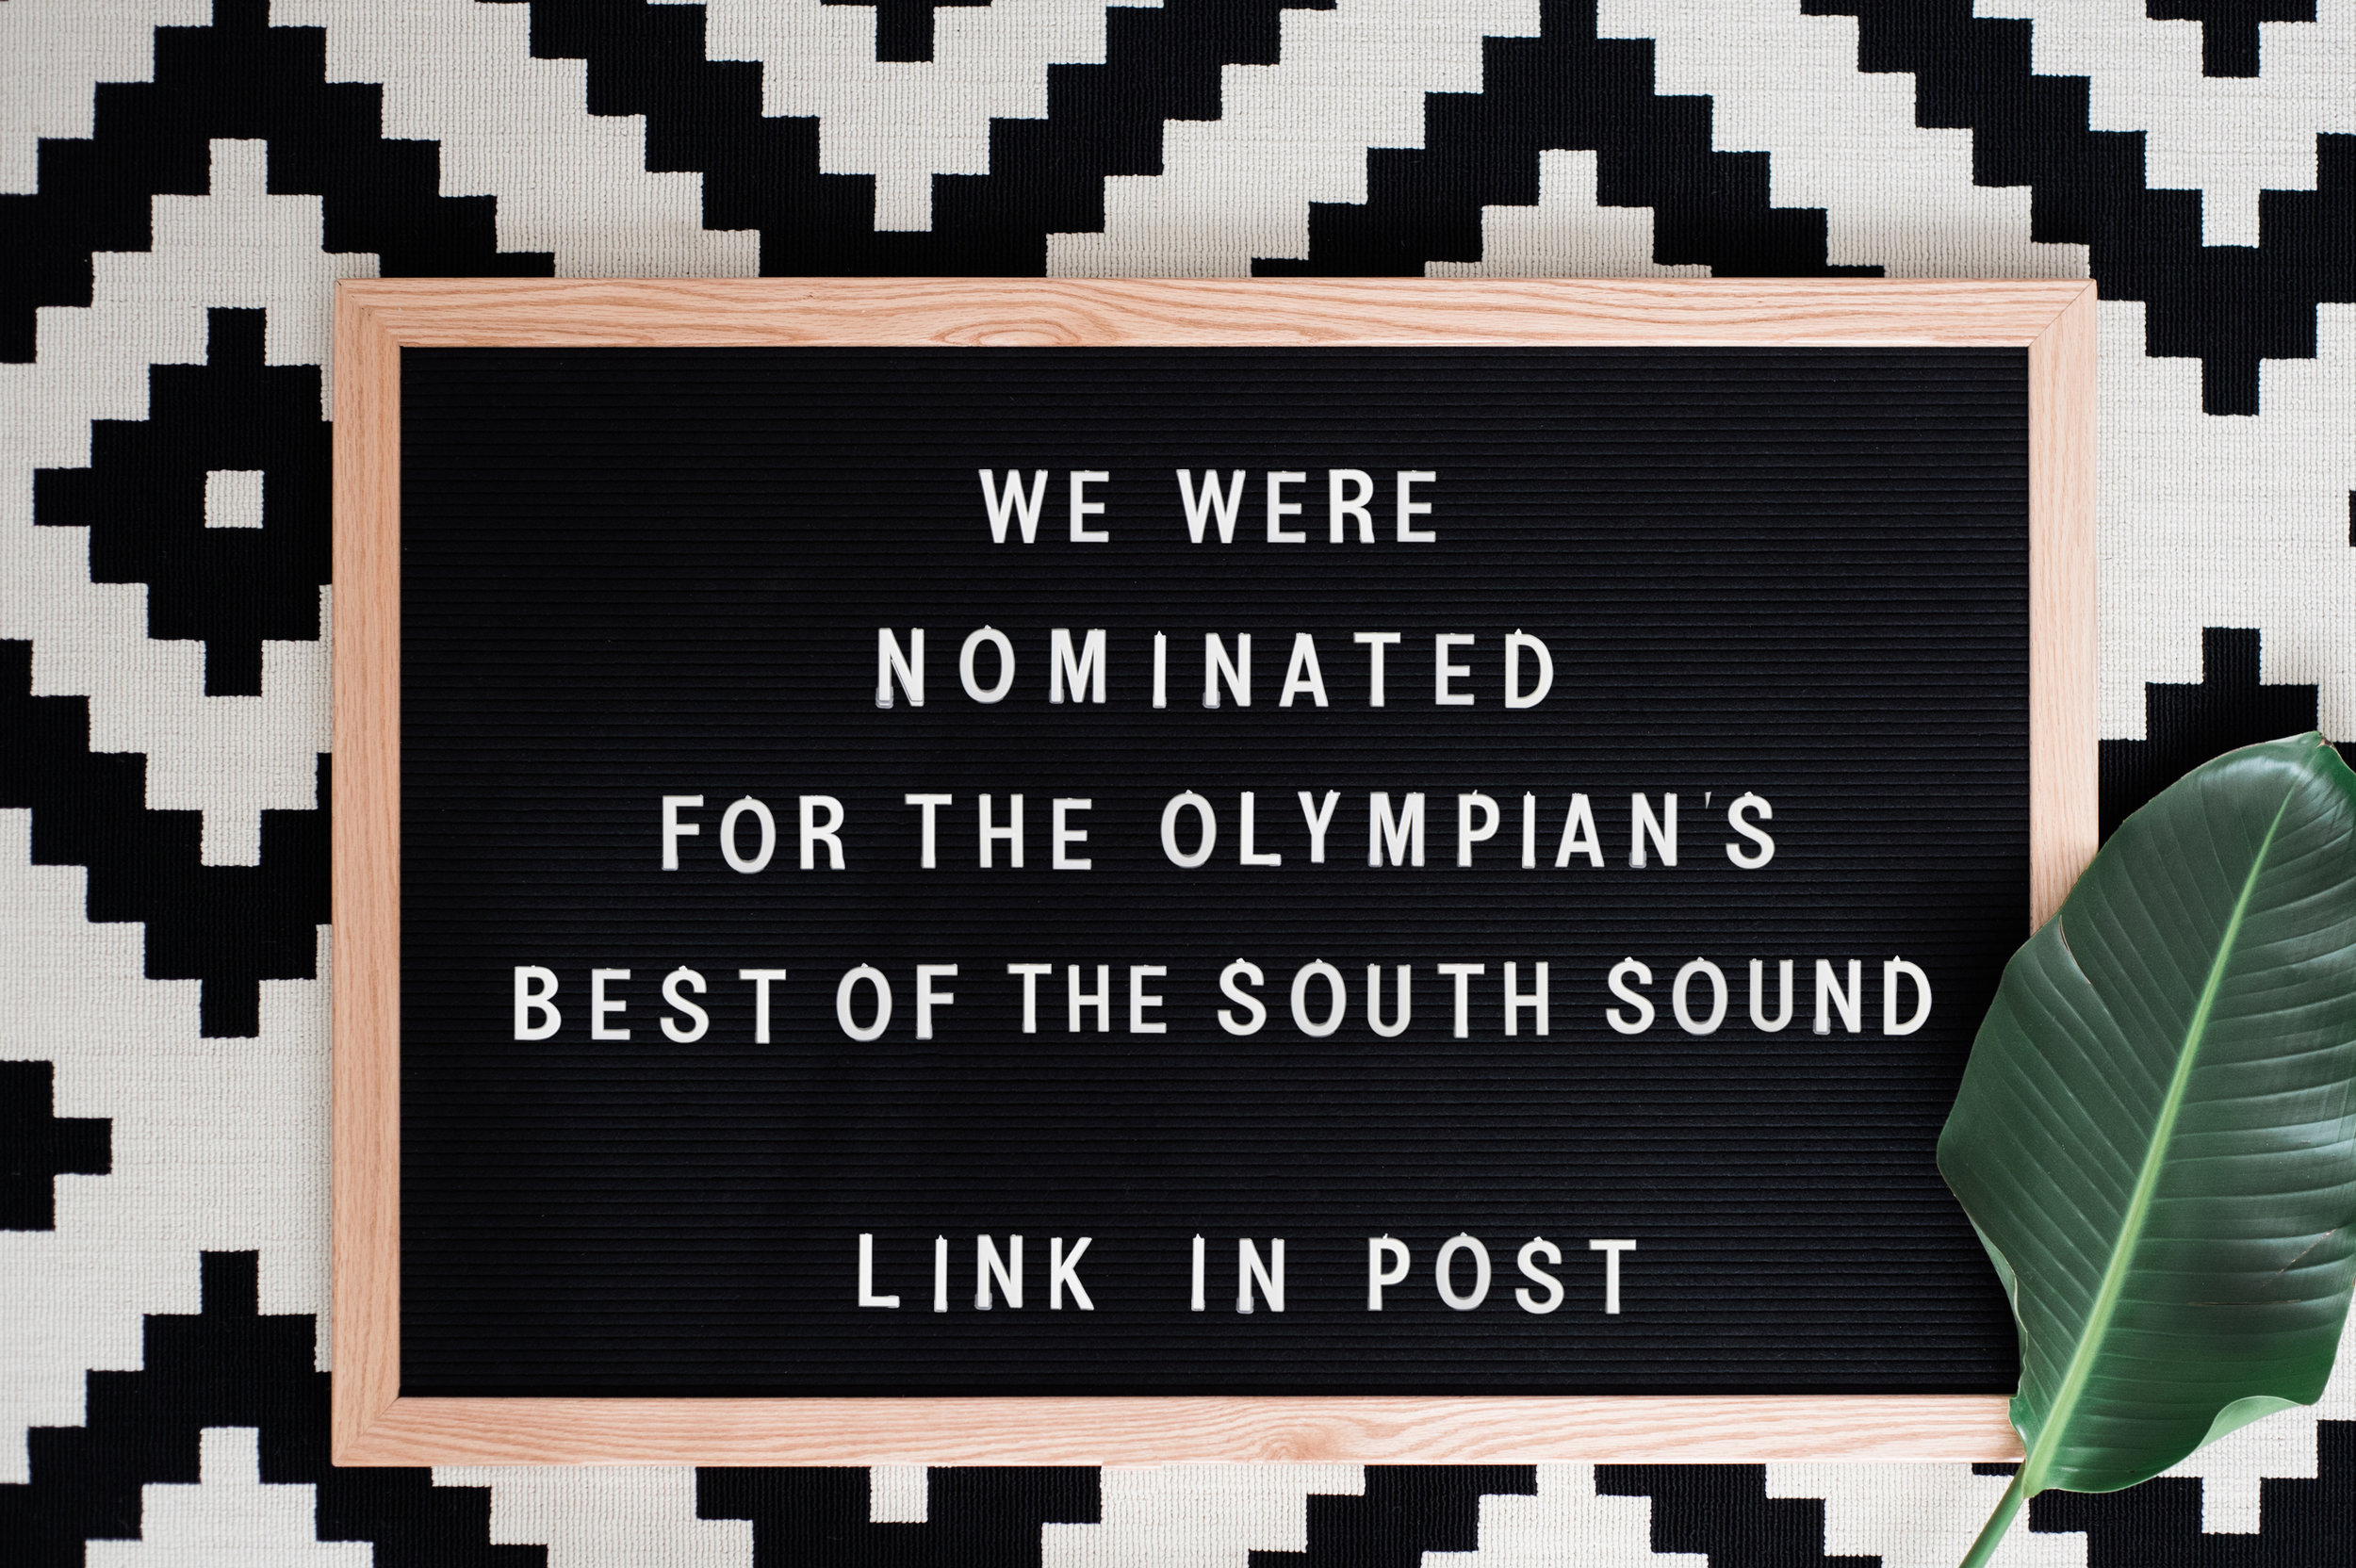 Fashionably Frank Marketing Nominated for The Olympian's Best of the South Sound